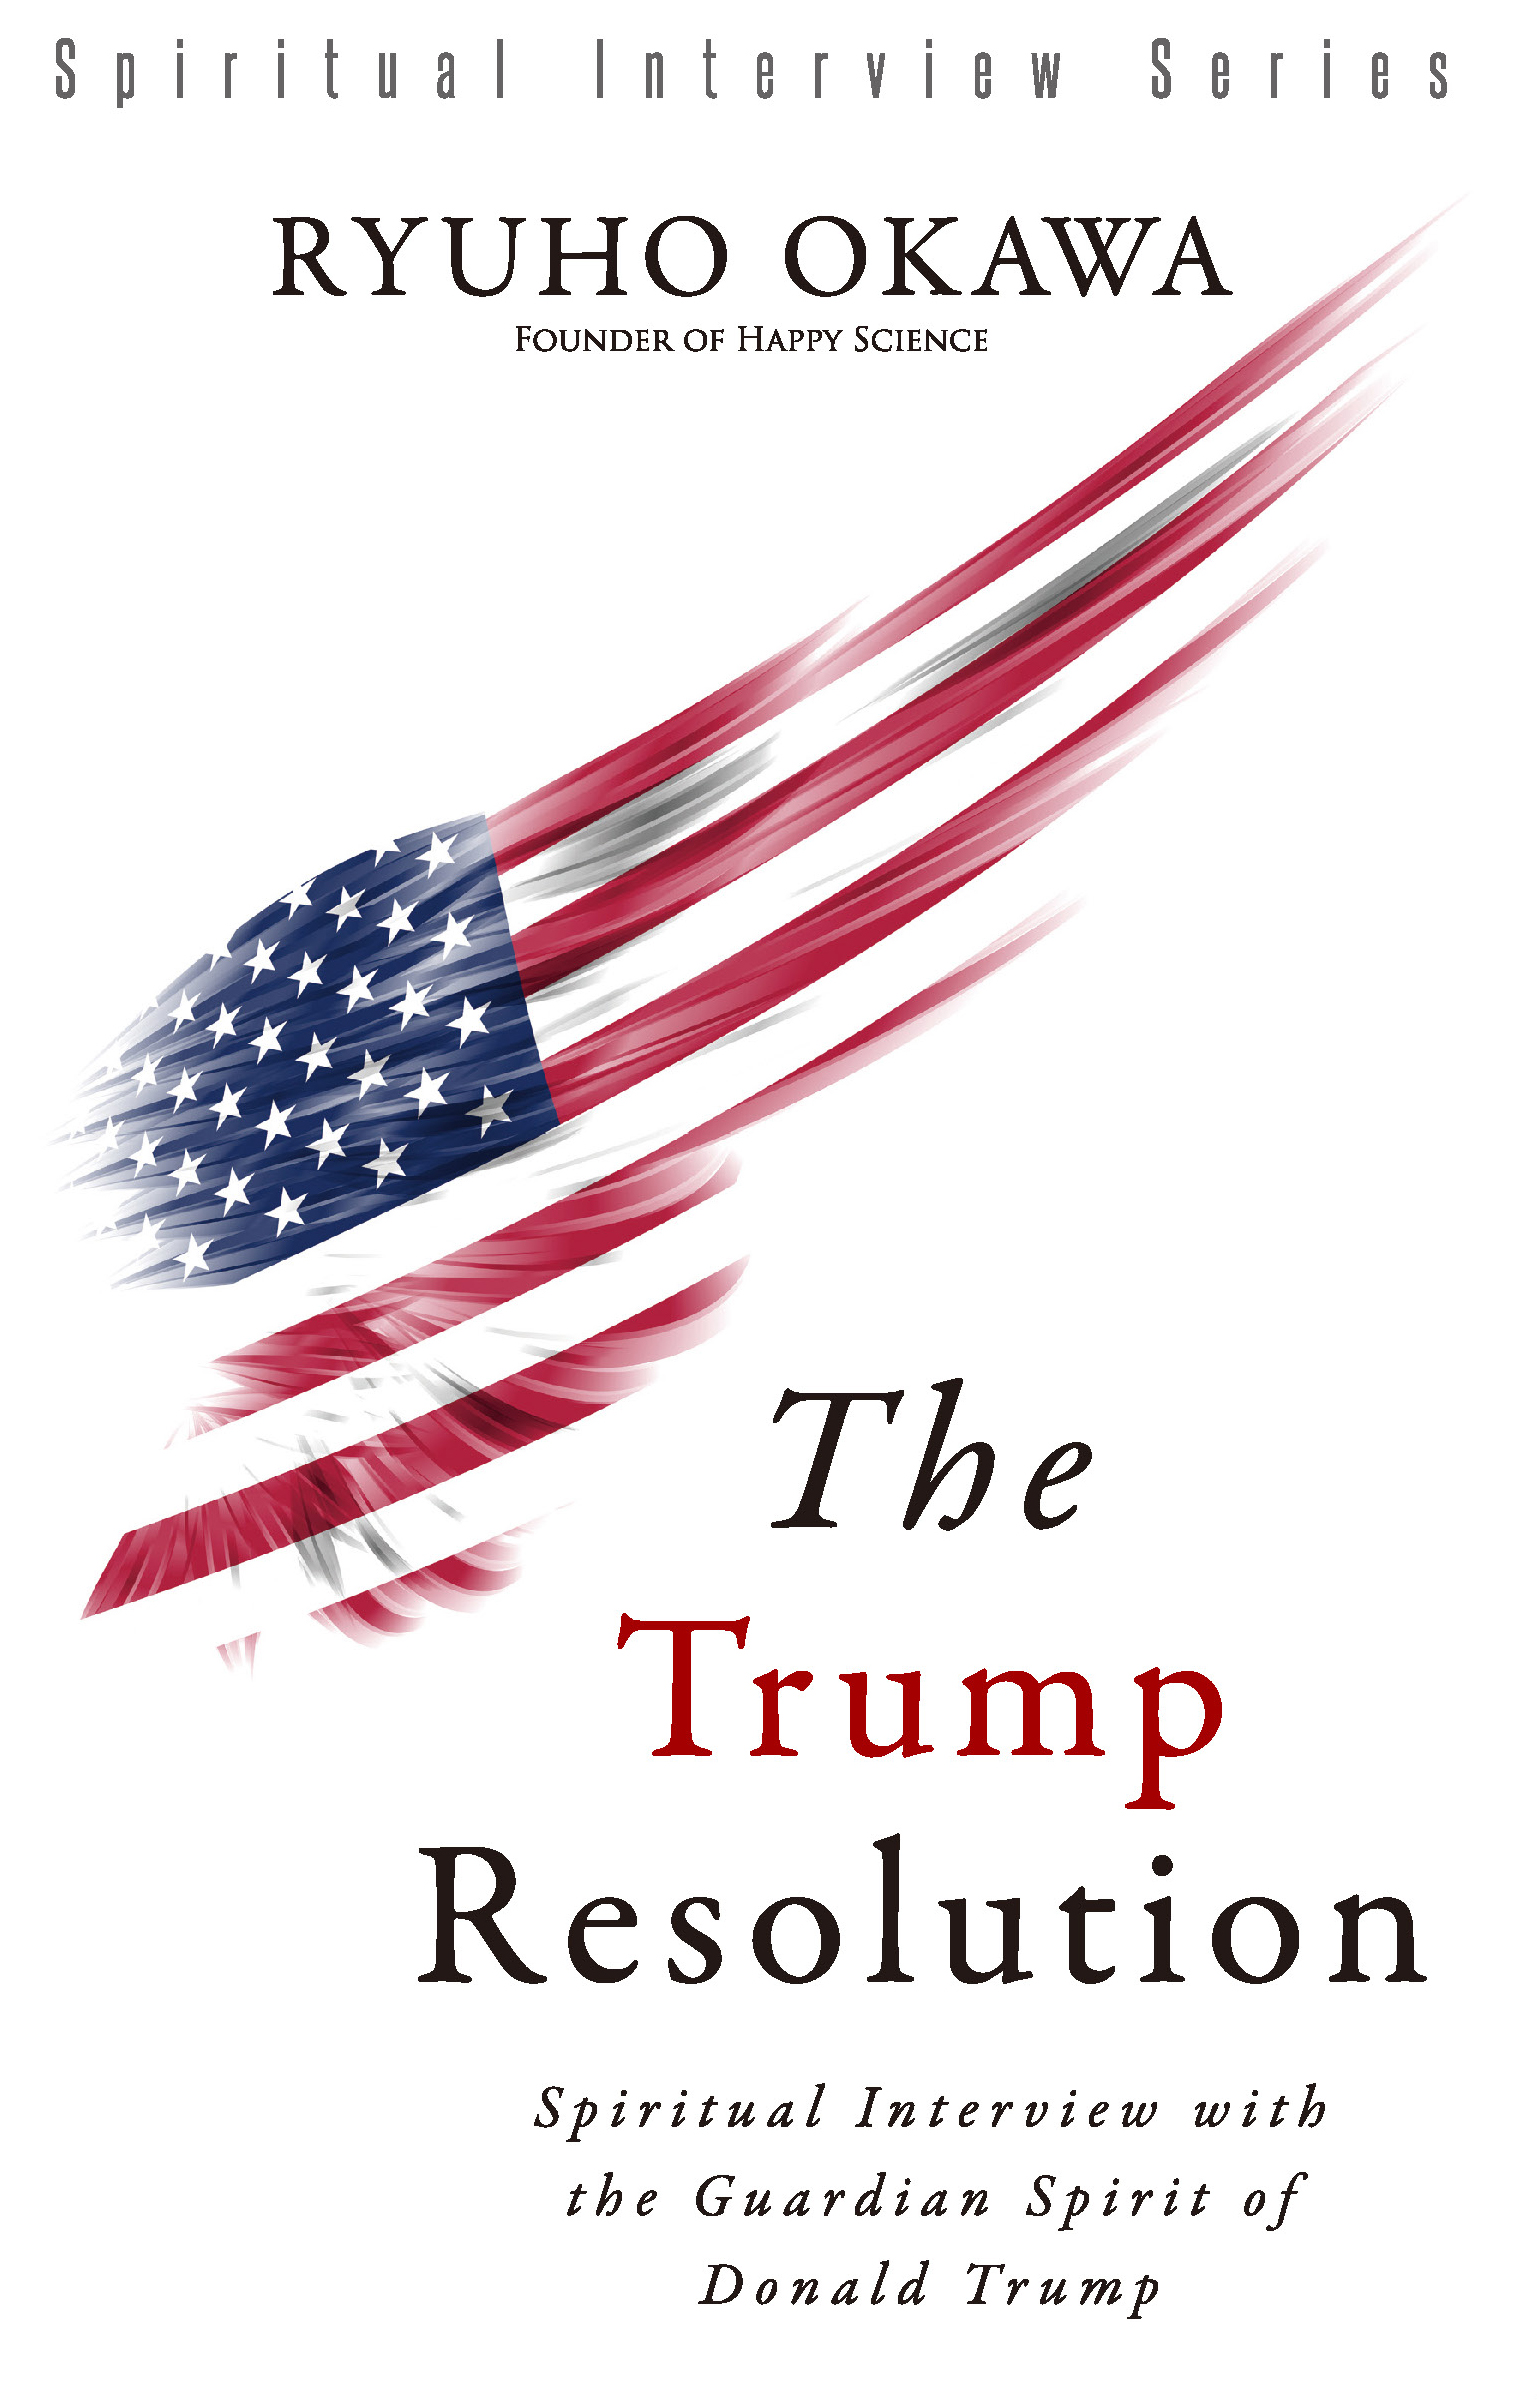 The Trump Resolution